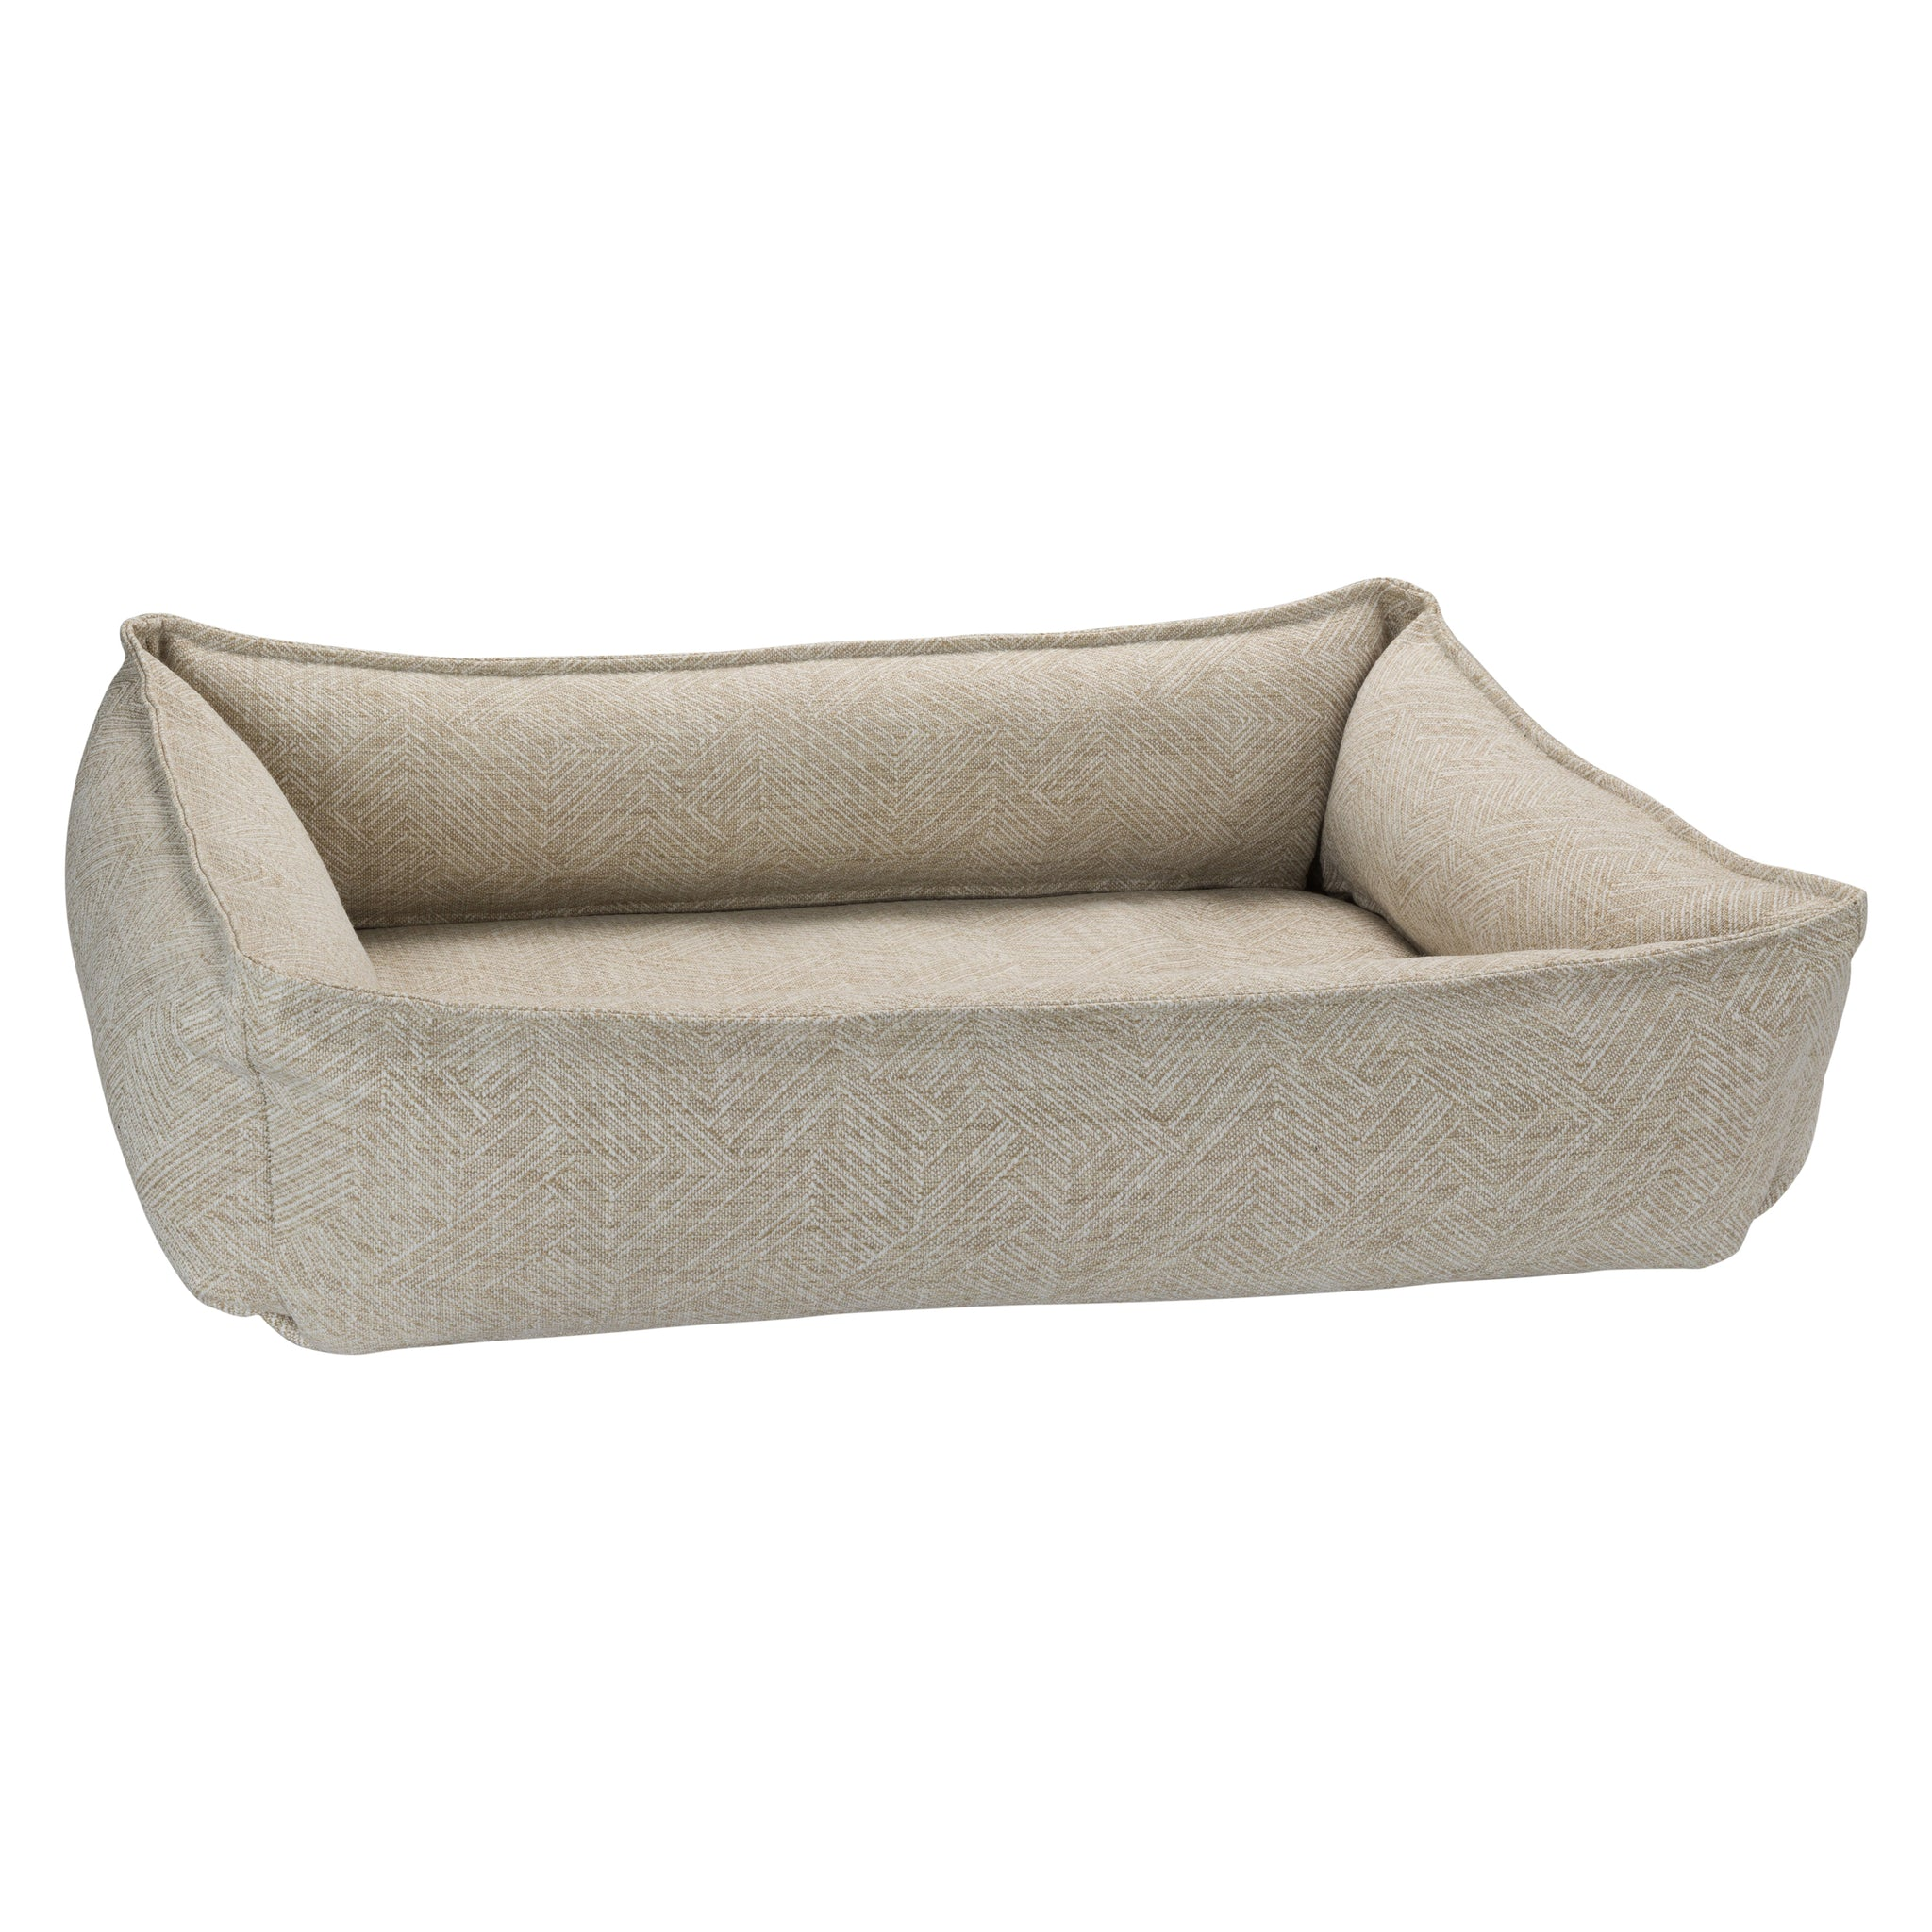 Lounger - Natura - Dog Bed